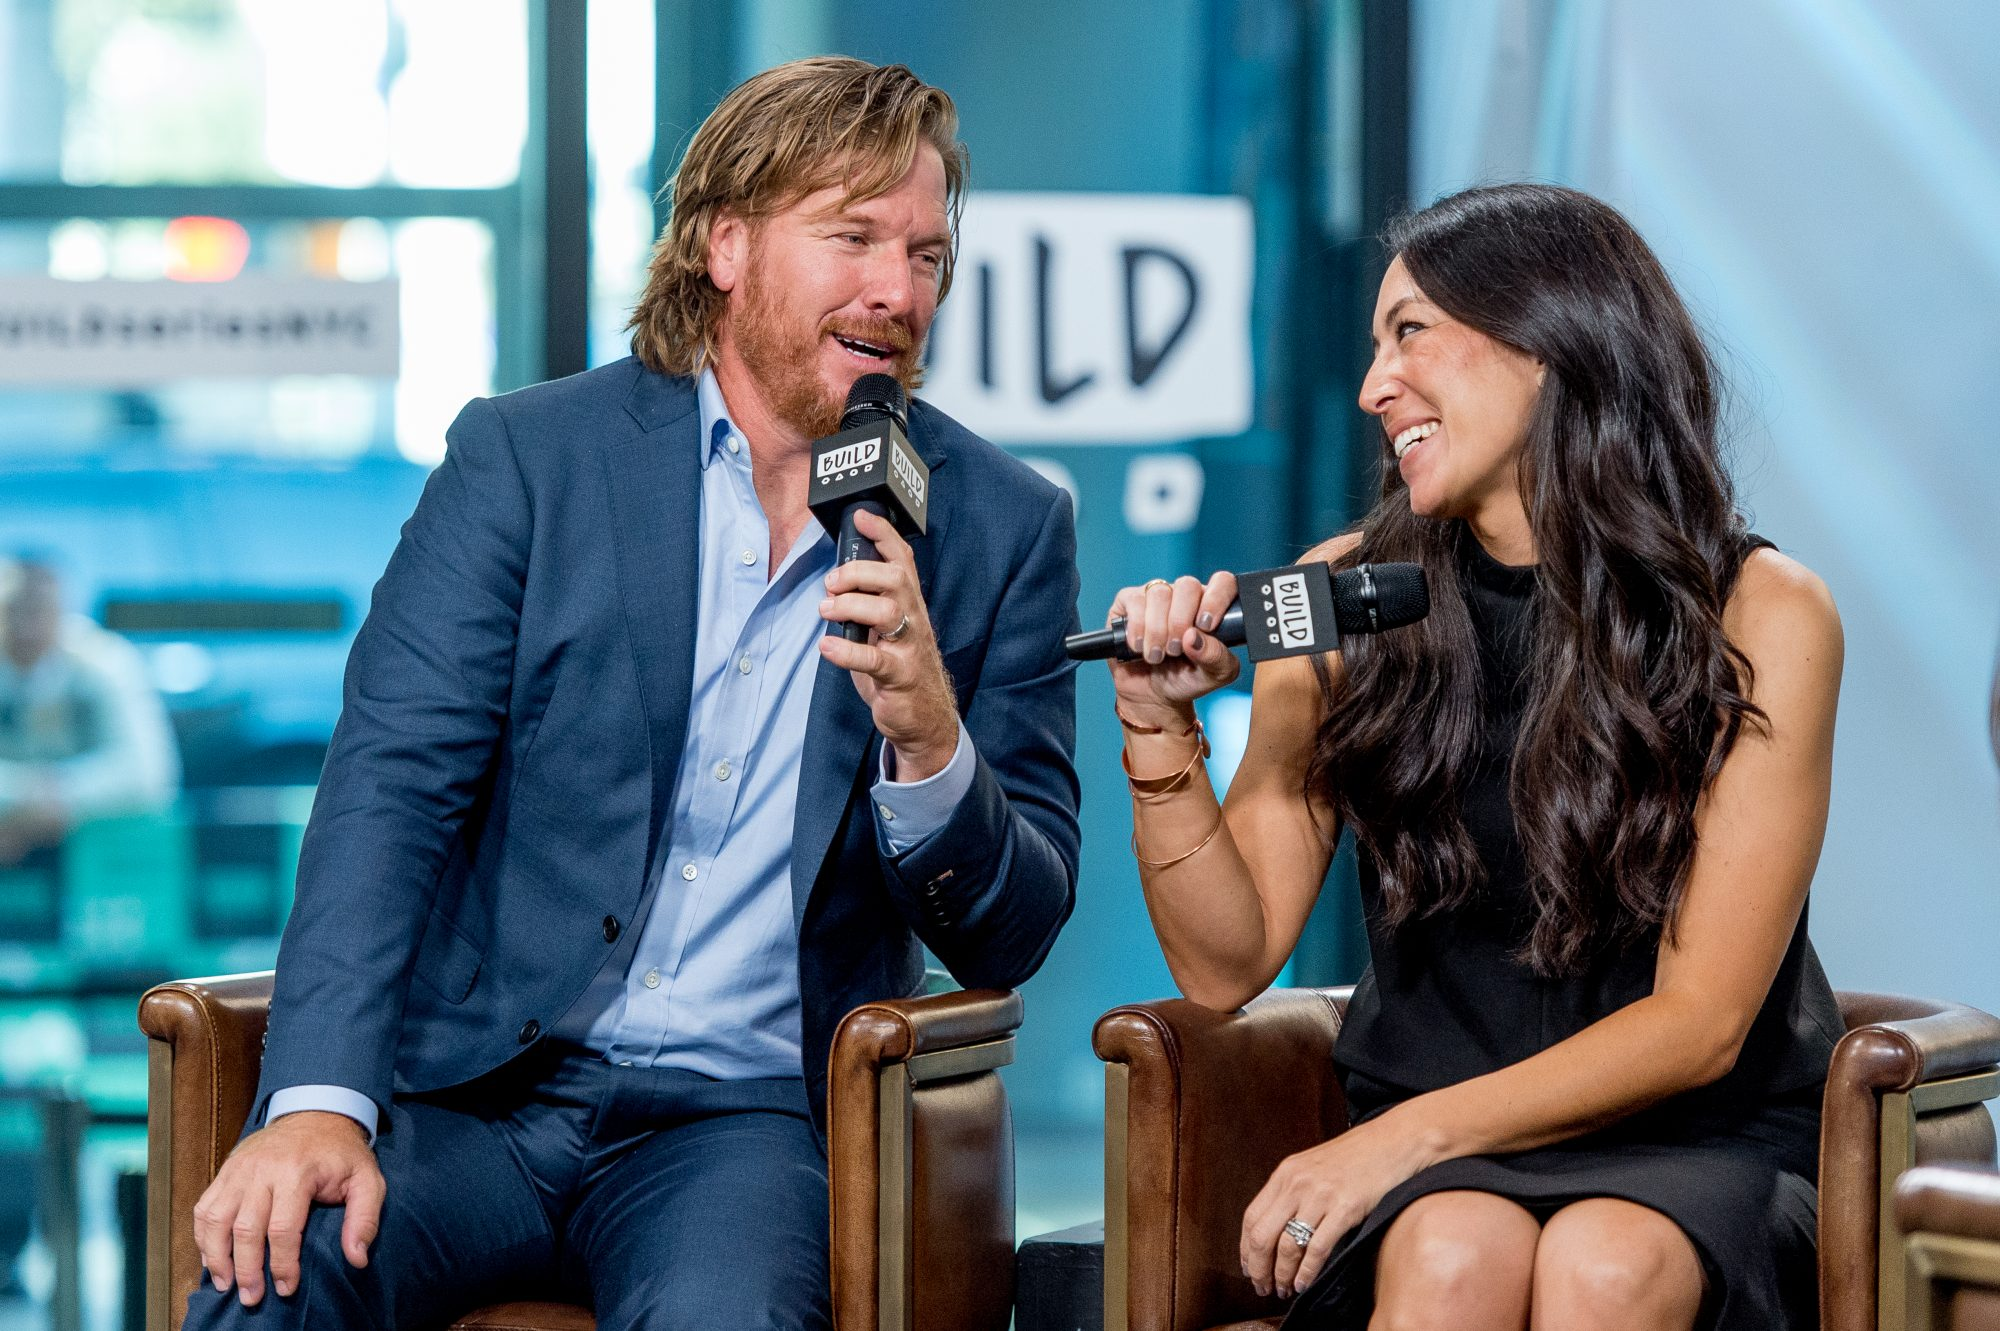 Chip & Joanna Gaines Give a Last Farewell on 'Fixer Upper' Finale: 'I'm Not Crying, You're Crying'